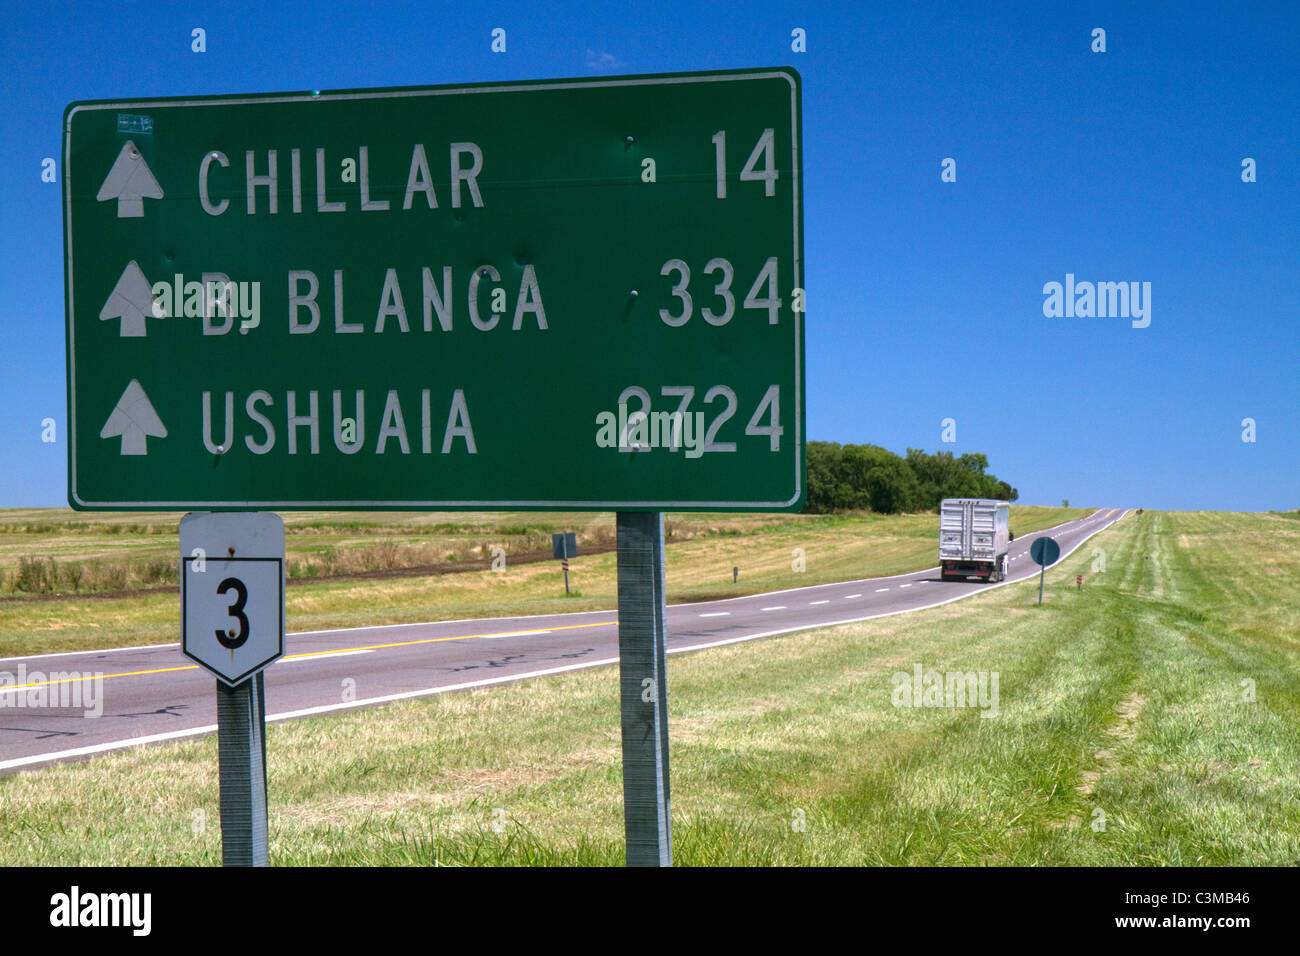 Road sign showing distance in kilometers along Highway 3 south of Azul, Argentina. - Stock Image